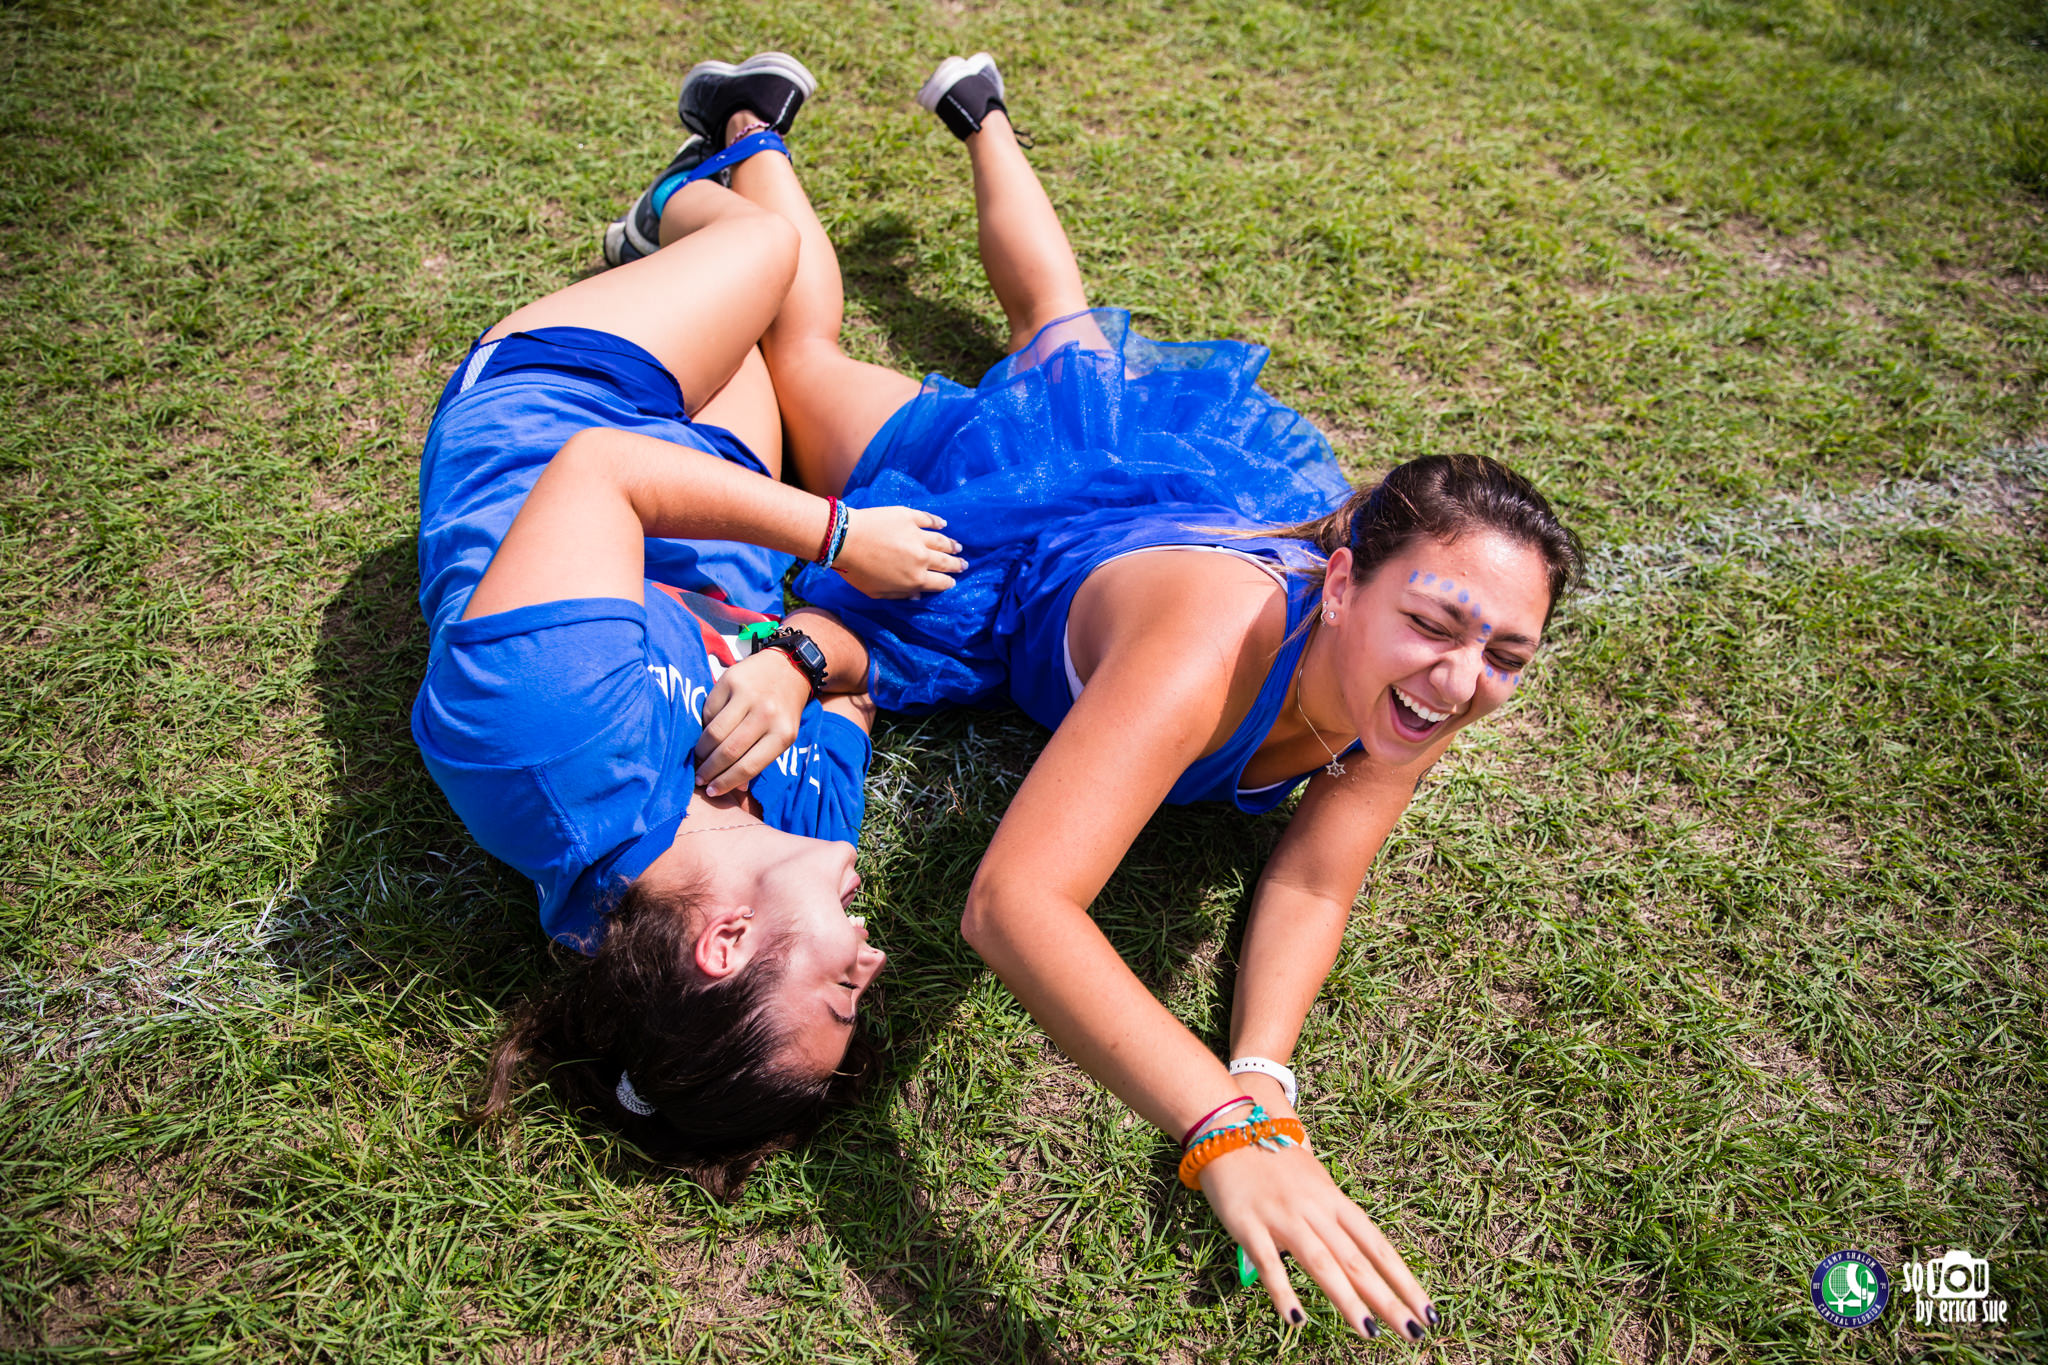 so-you-by-erica-sue-camp-shalom-central-florida-sleepaway-camp-4887.jpg